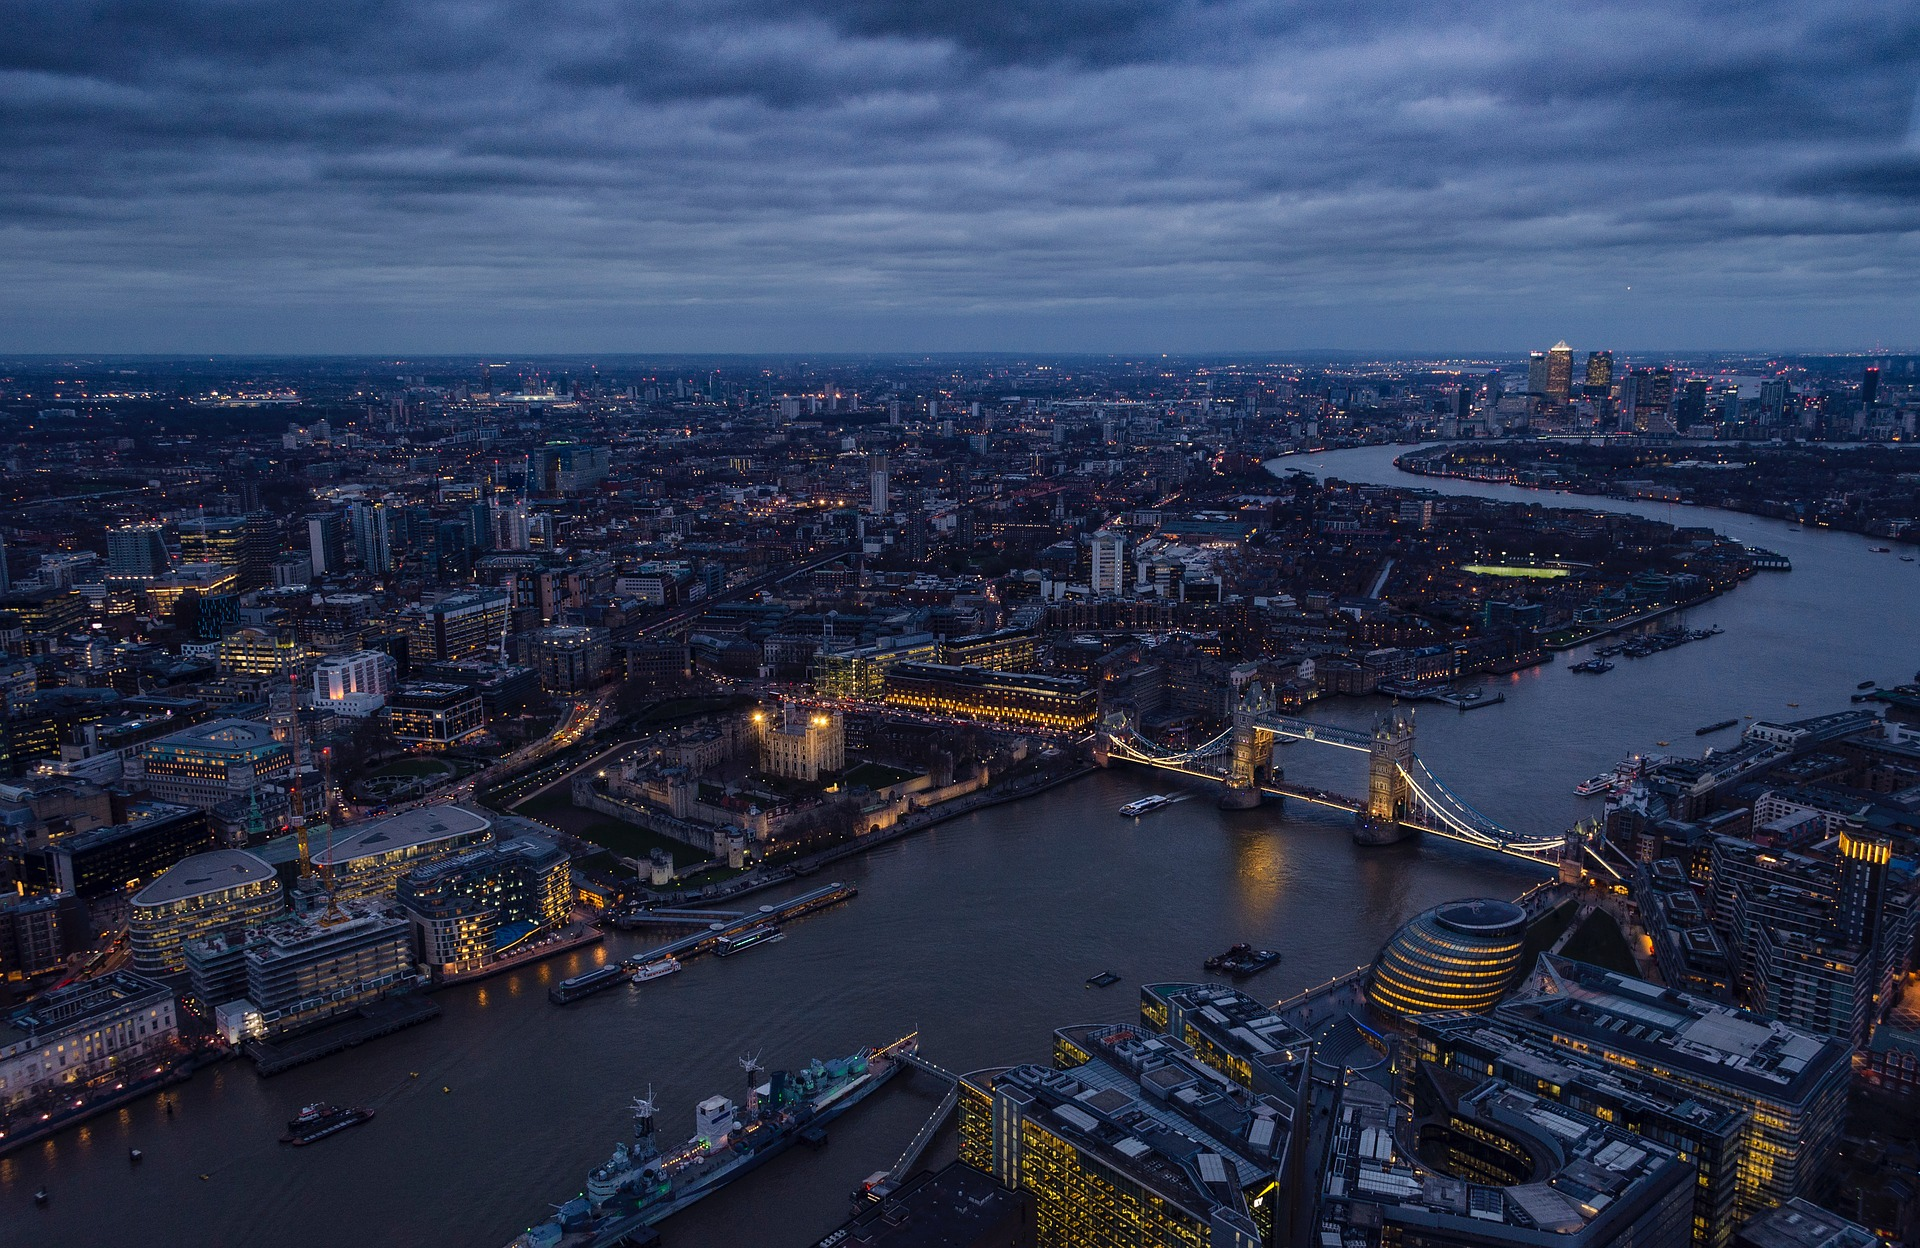 Aerial view of London, UK at night